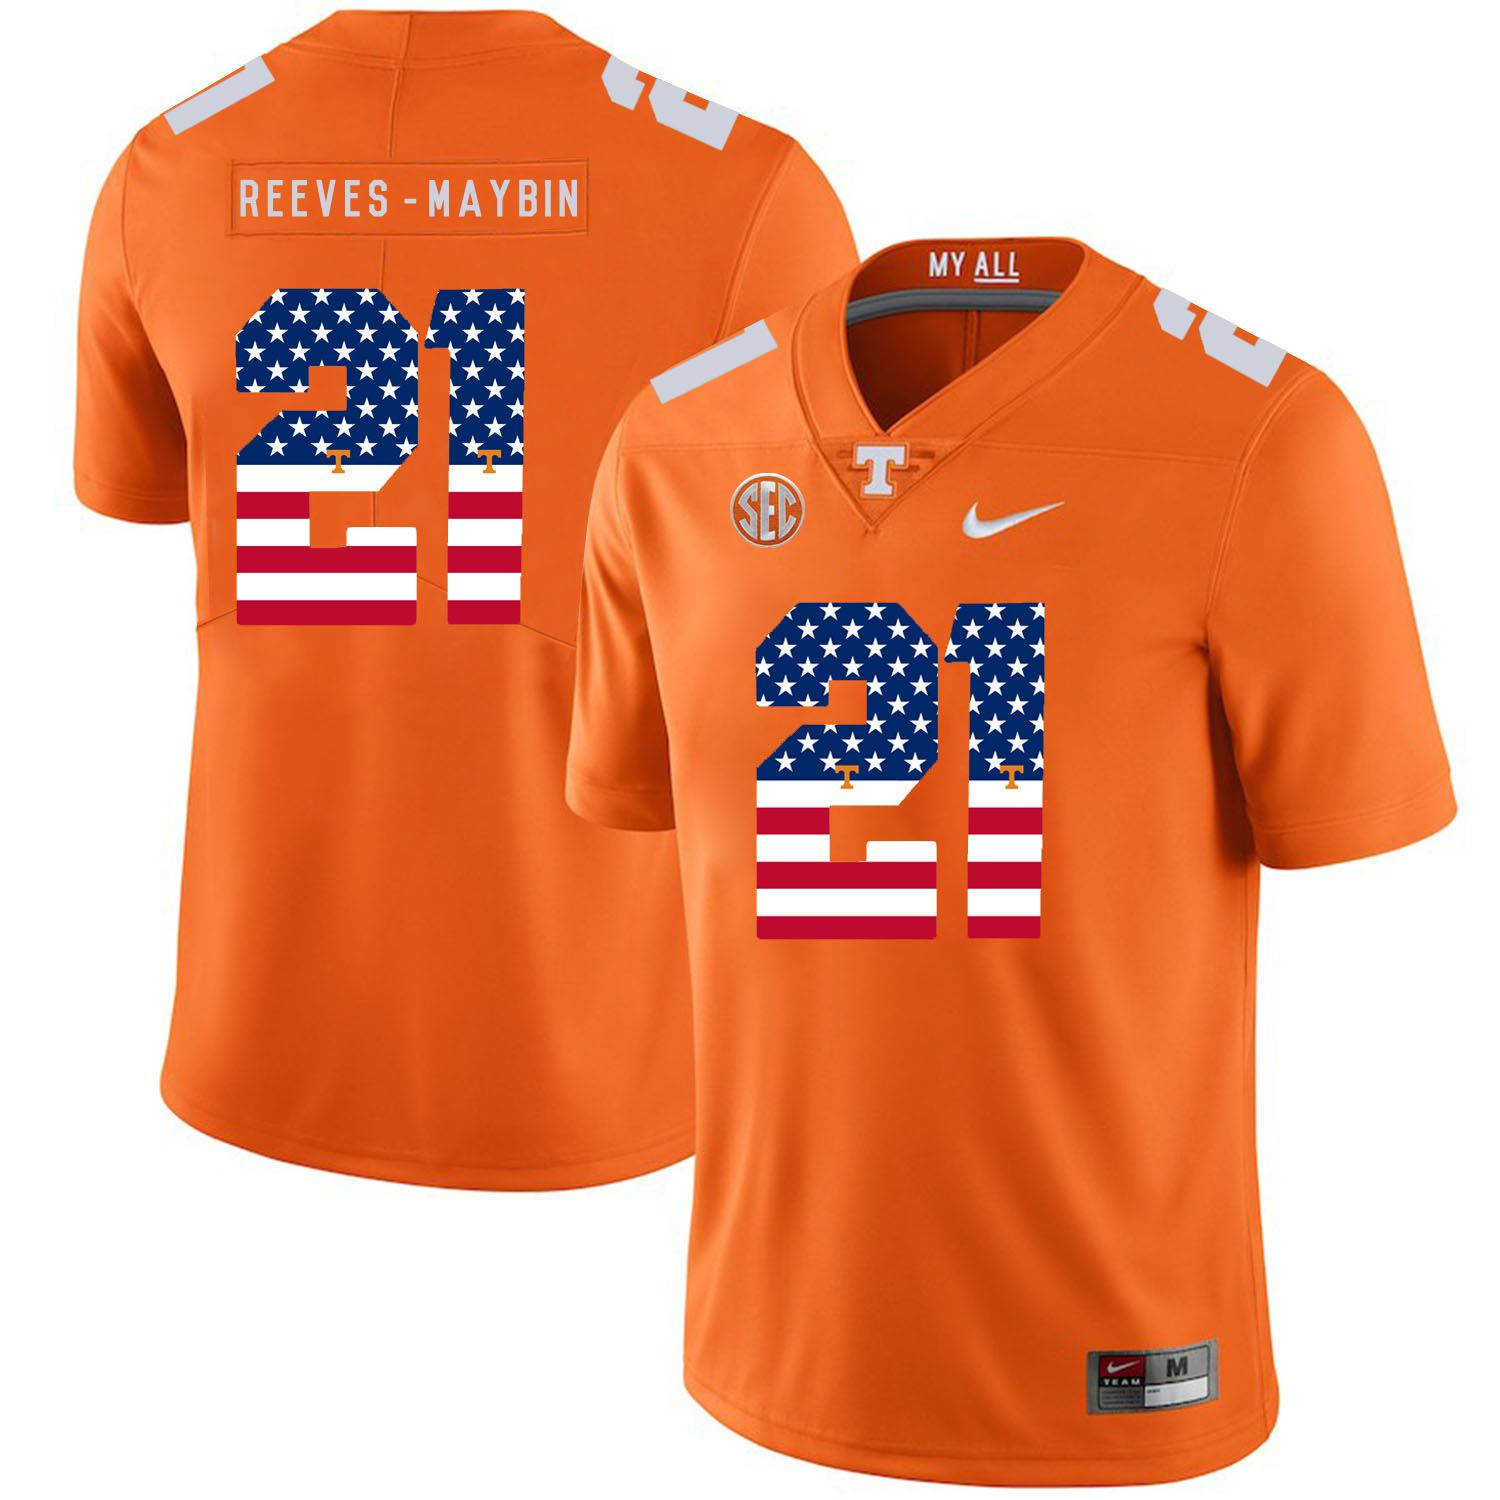 Men Tennessee Volunteers 21 Reeves-maybin Orange Flag Customized NCAA Jerseys